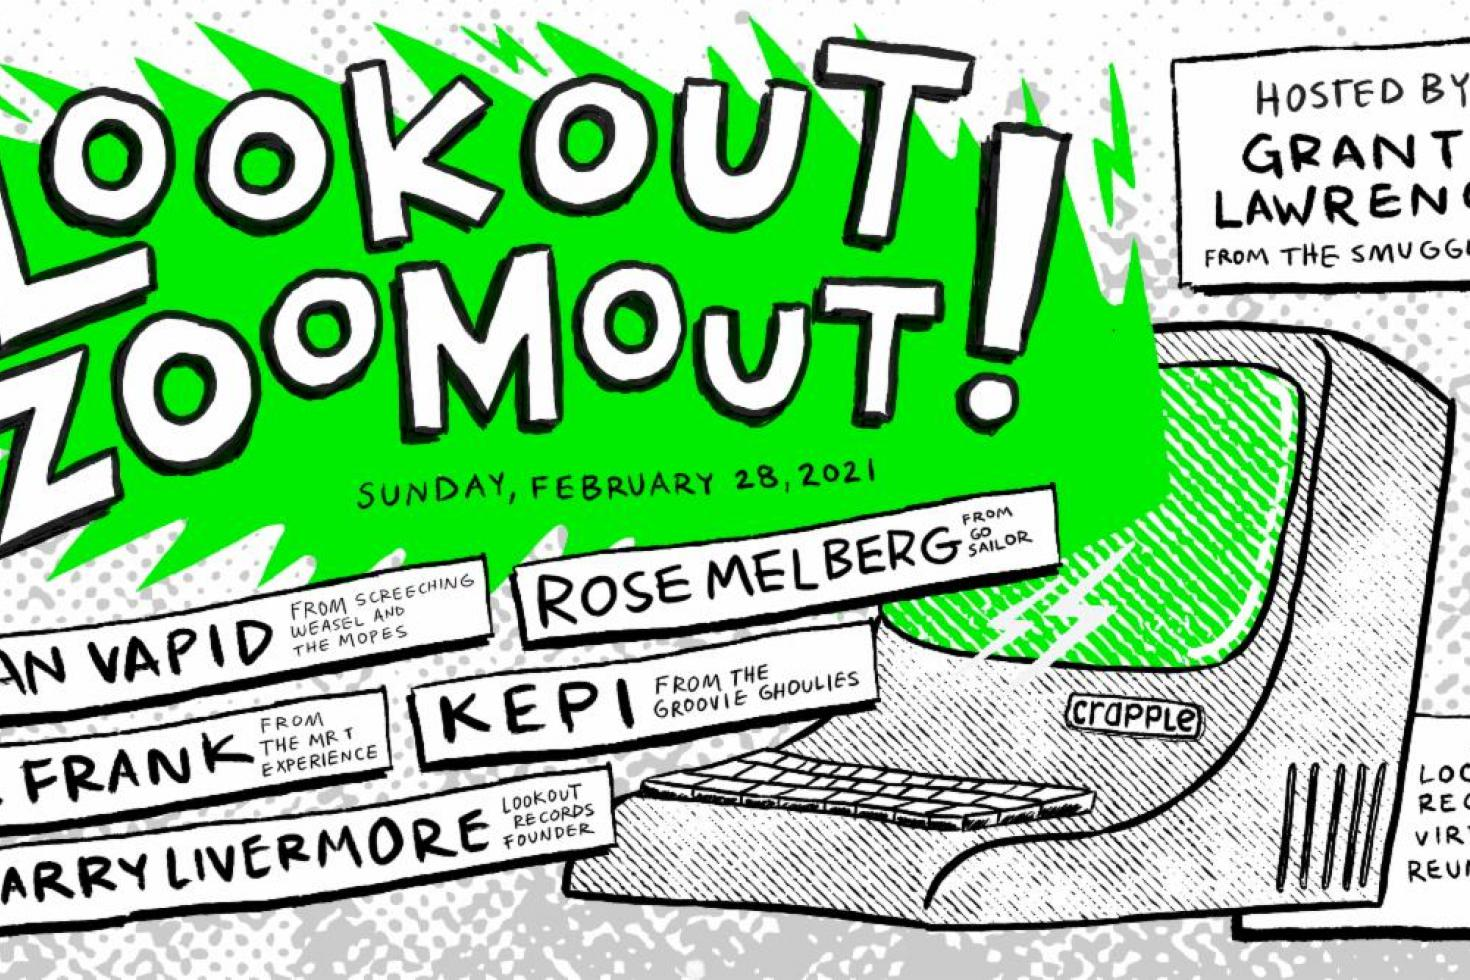 Lookkout Records announce Lookout Zoomout 2 - the second in a series of online reunion shows